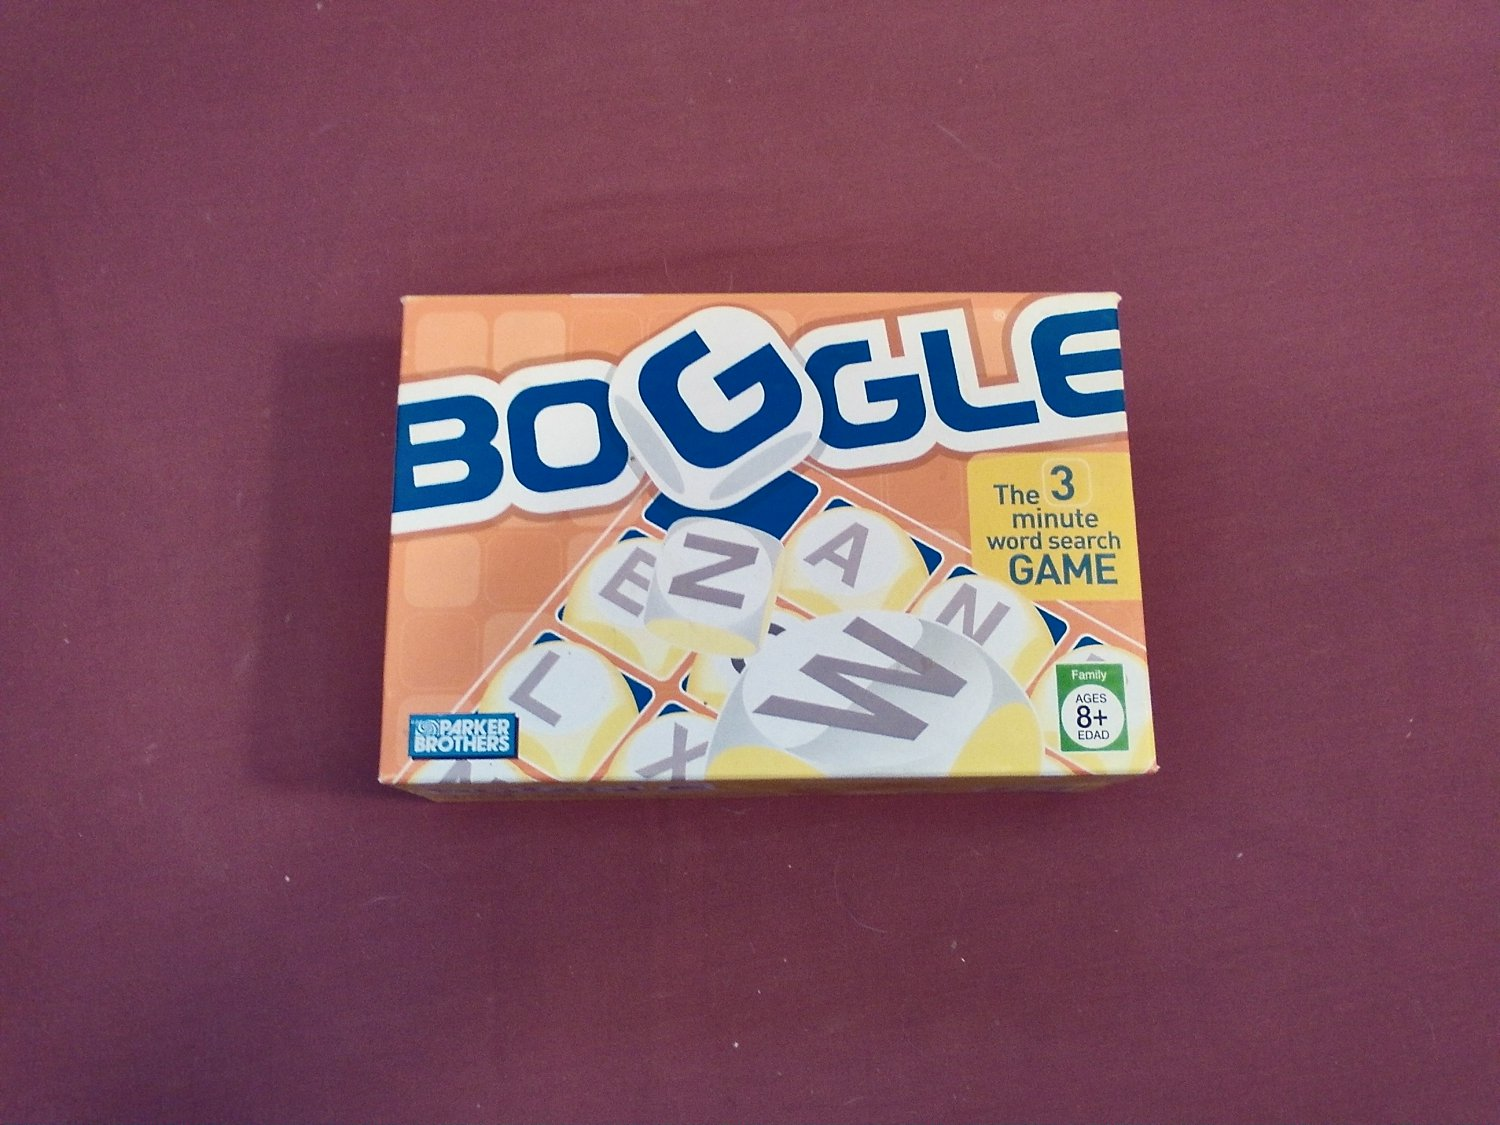 Boggle the 3 Minute Word Search Game by Parker Brothers Hasbro 2005 - Complete (mw)